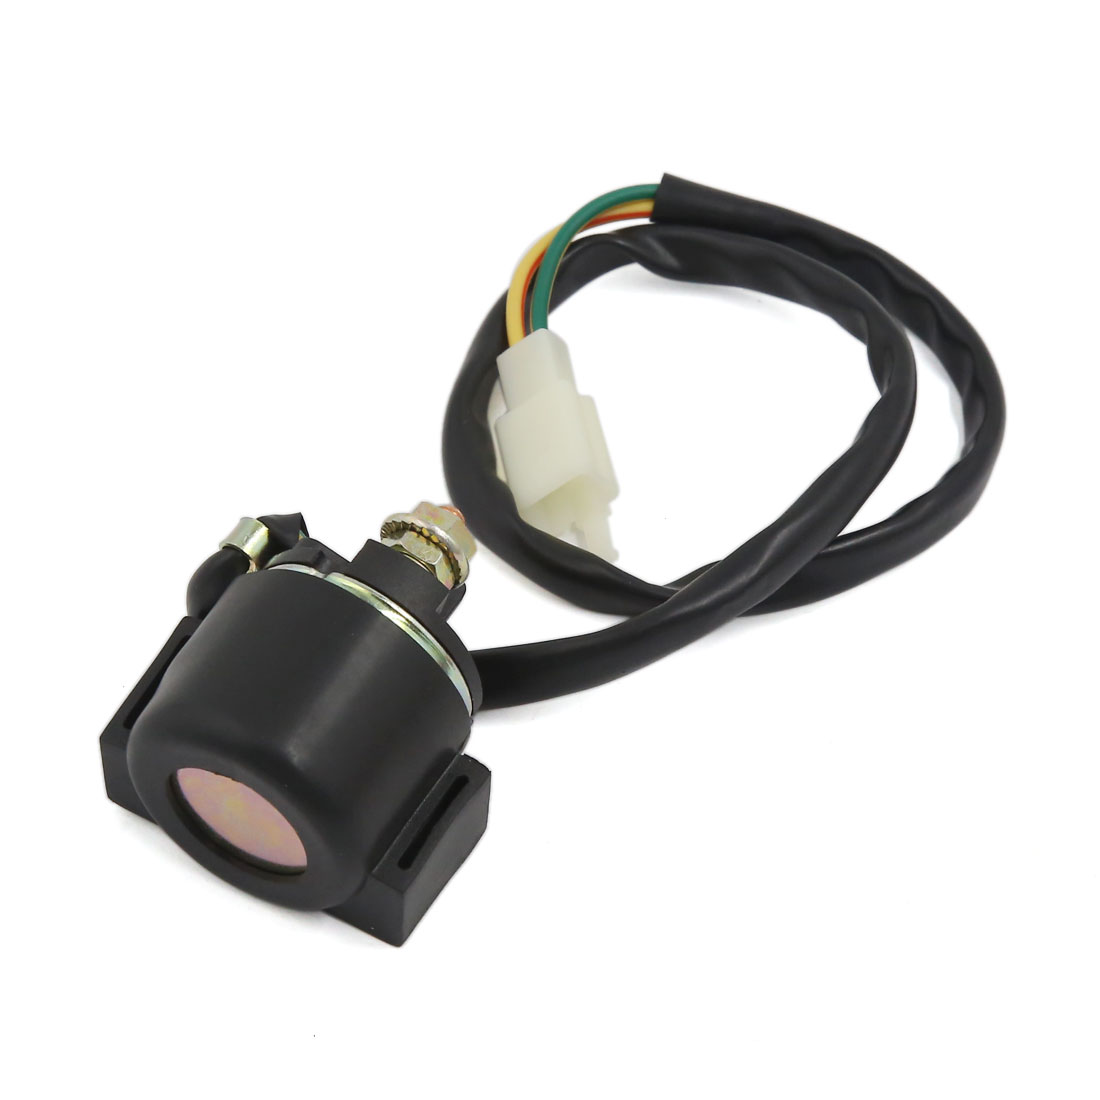 Motorcycle Motorbike Scooter Start Solenoid for GY6-125